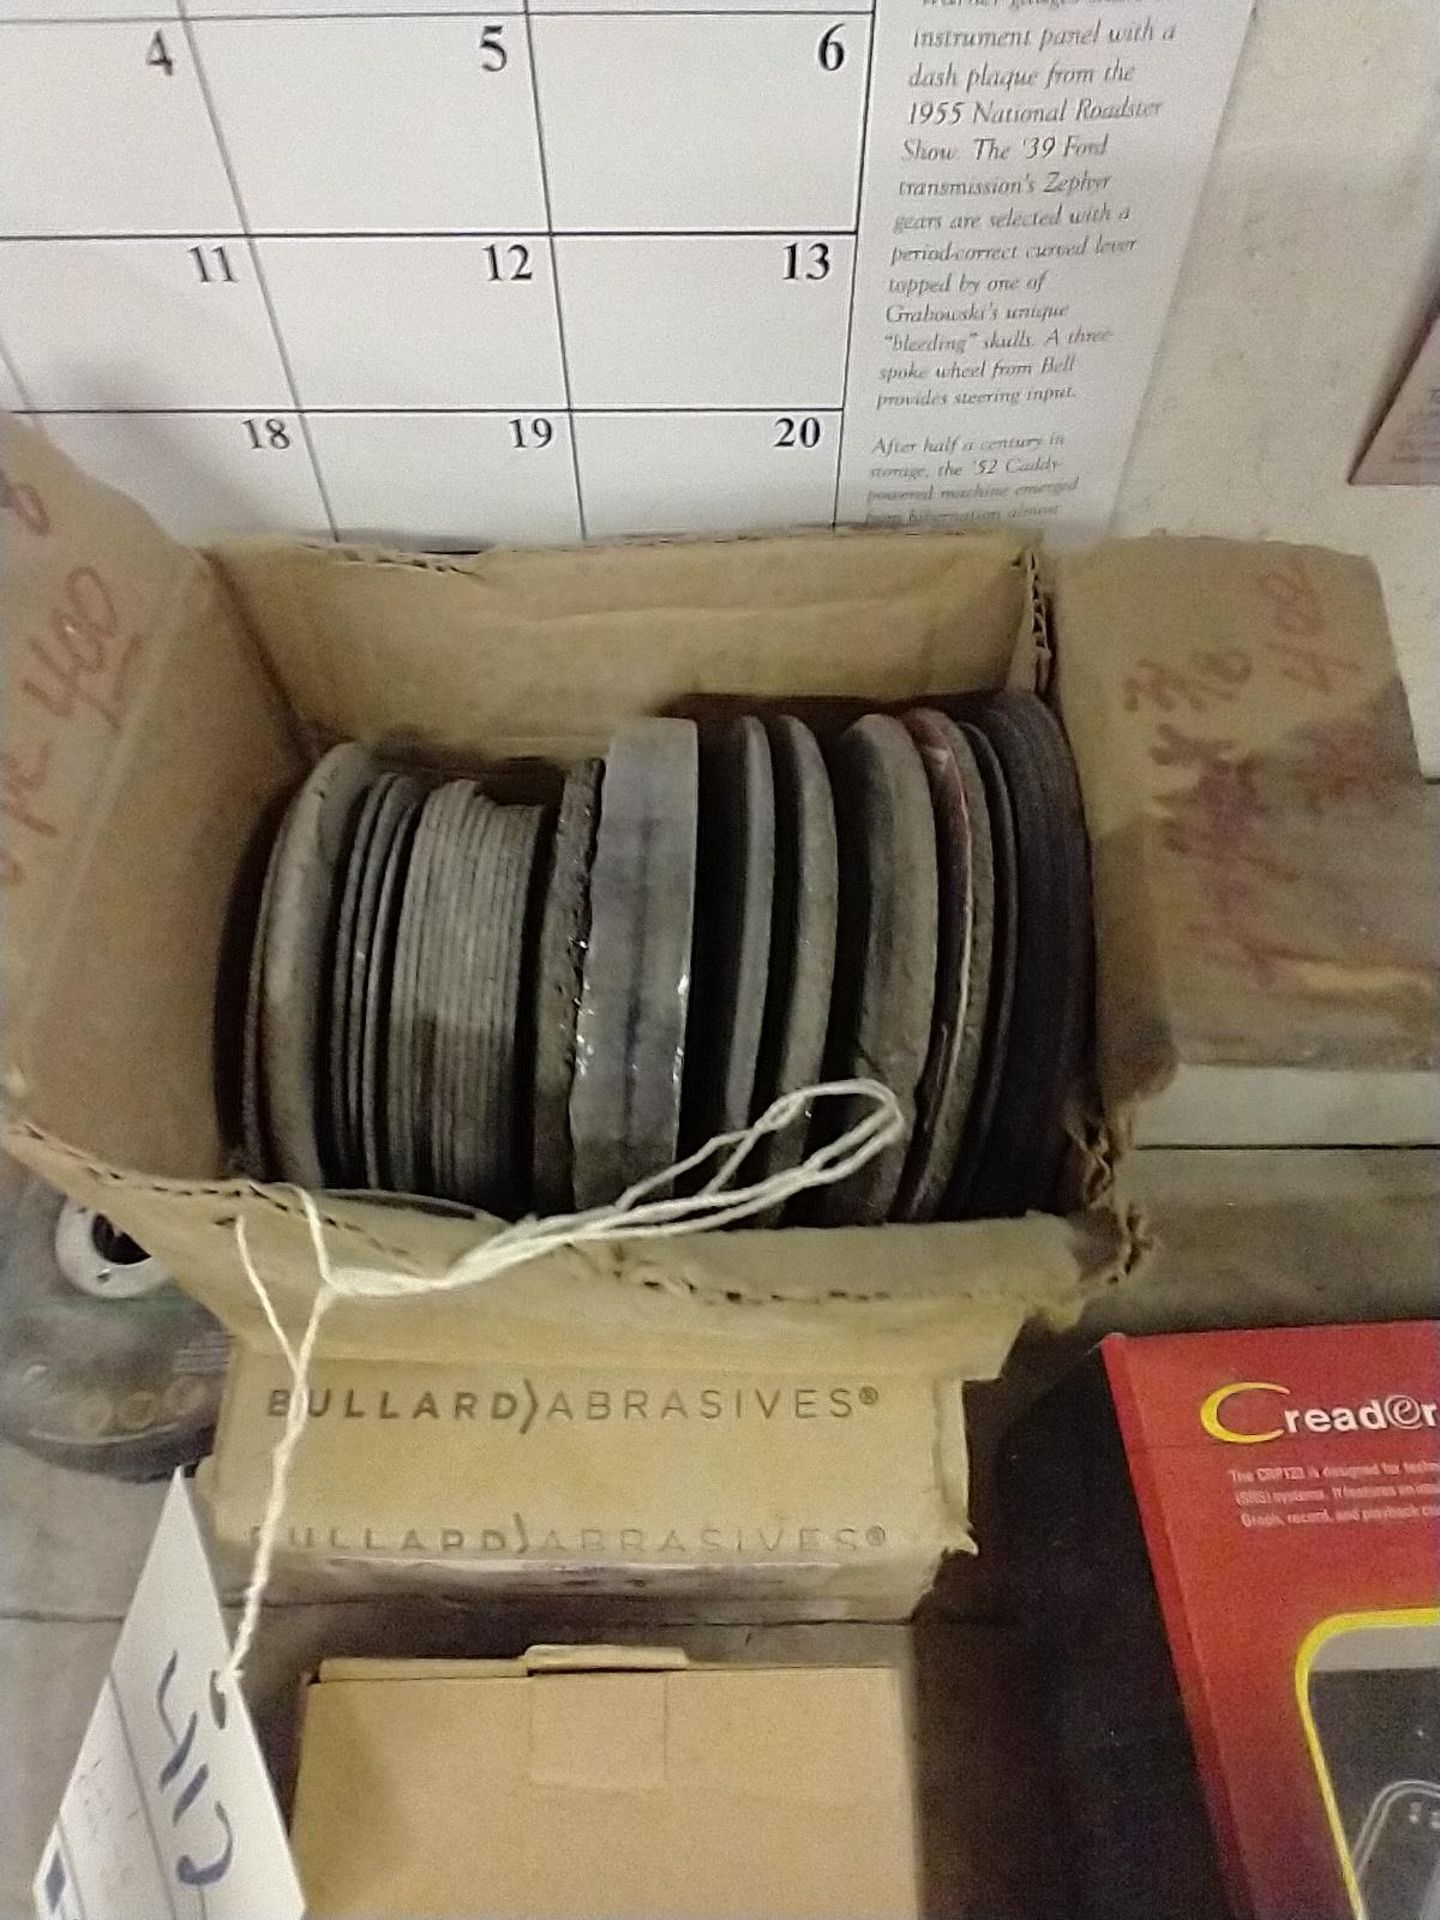 LOT OF ASSORTED CUT OFF WHEELS - Image 2 of 5